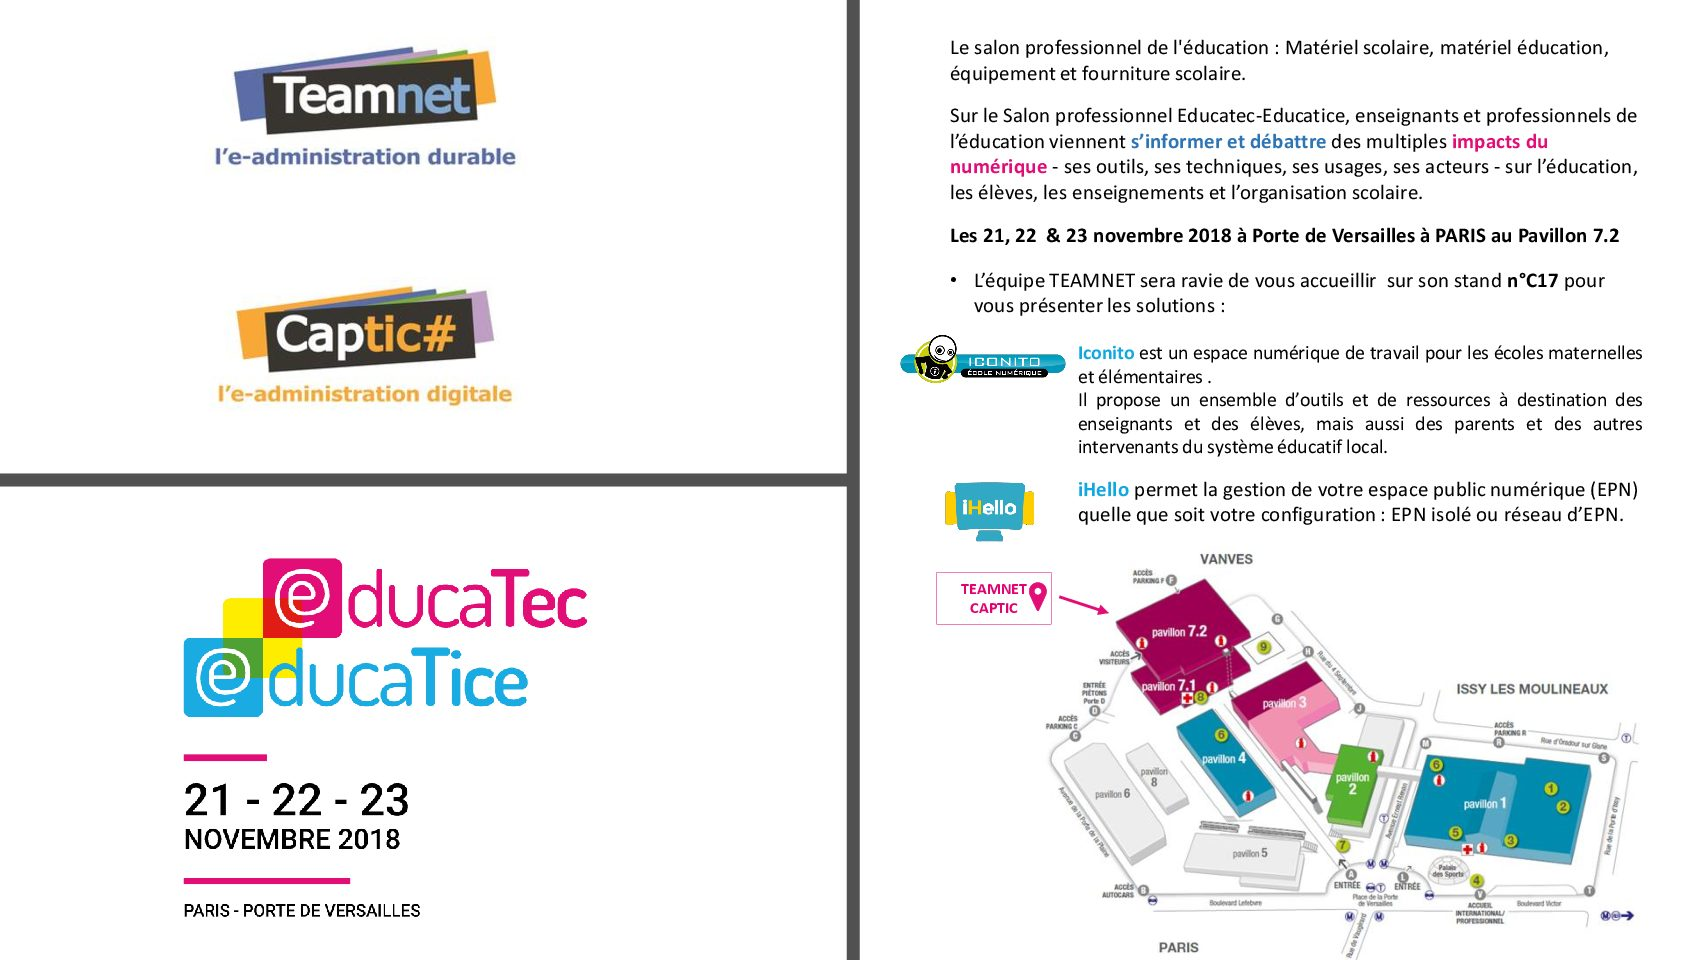 Salon EDUCATEC – EDUCATICE 21, 22 et 23 novembre 2018.